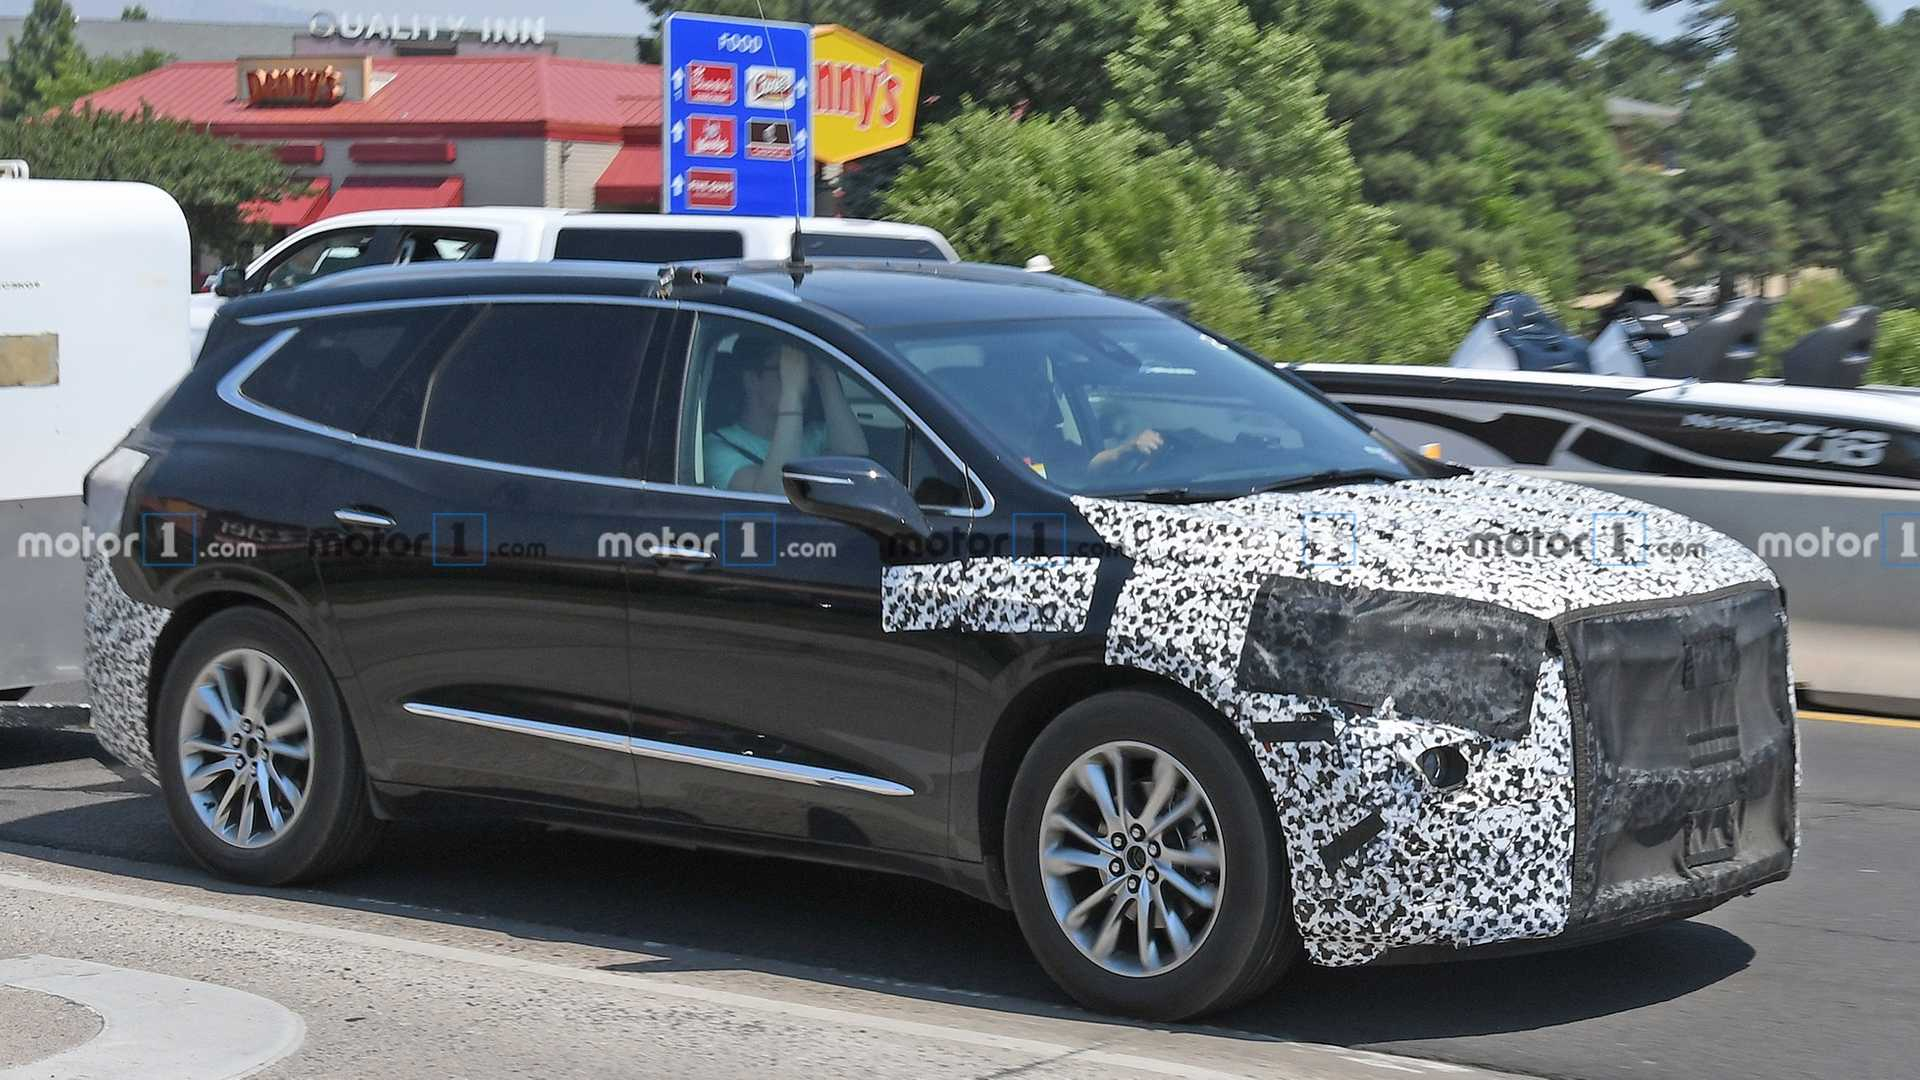 2021 Buick Enclave Spied For The First Time New 2022 Buick Enclave New Colors, Oil Type, Options